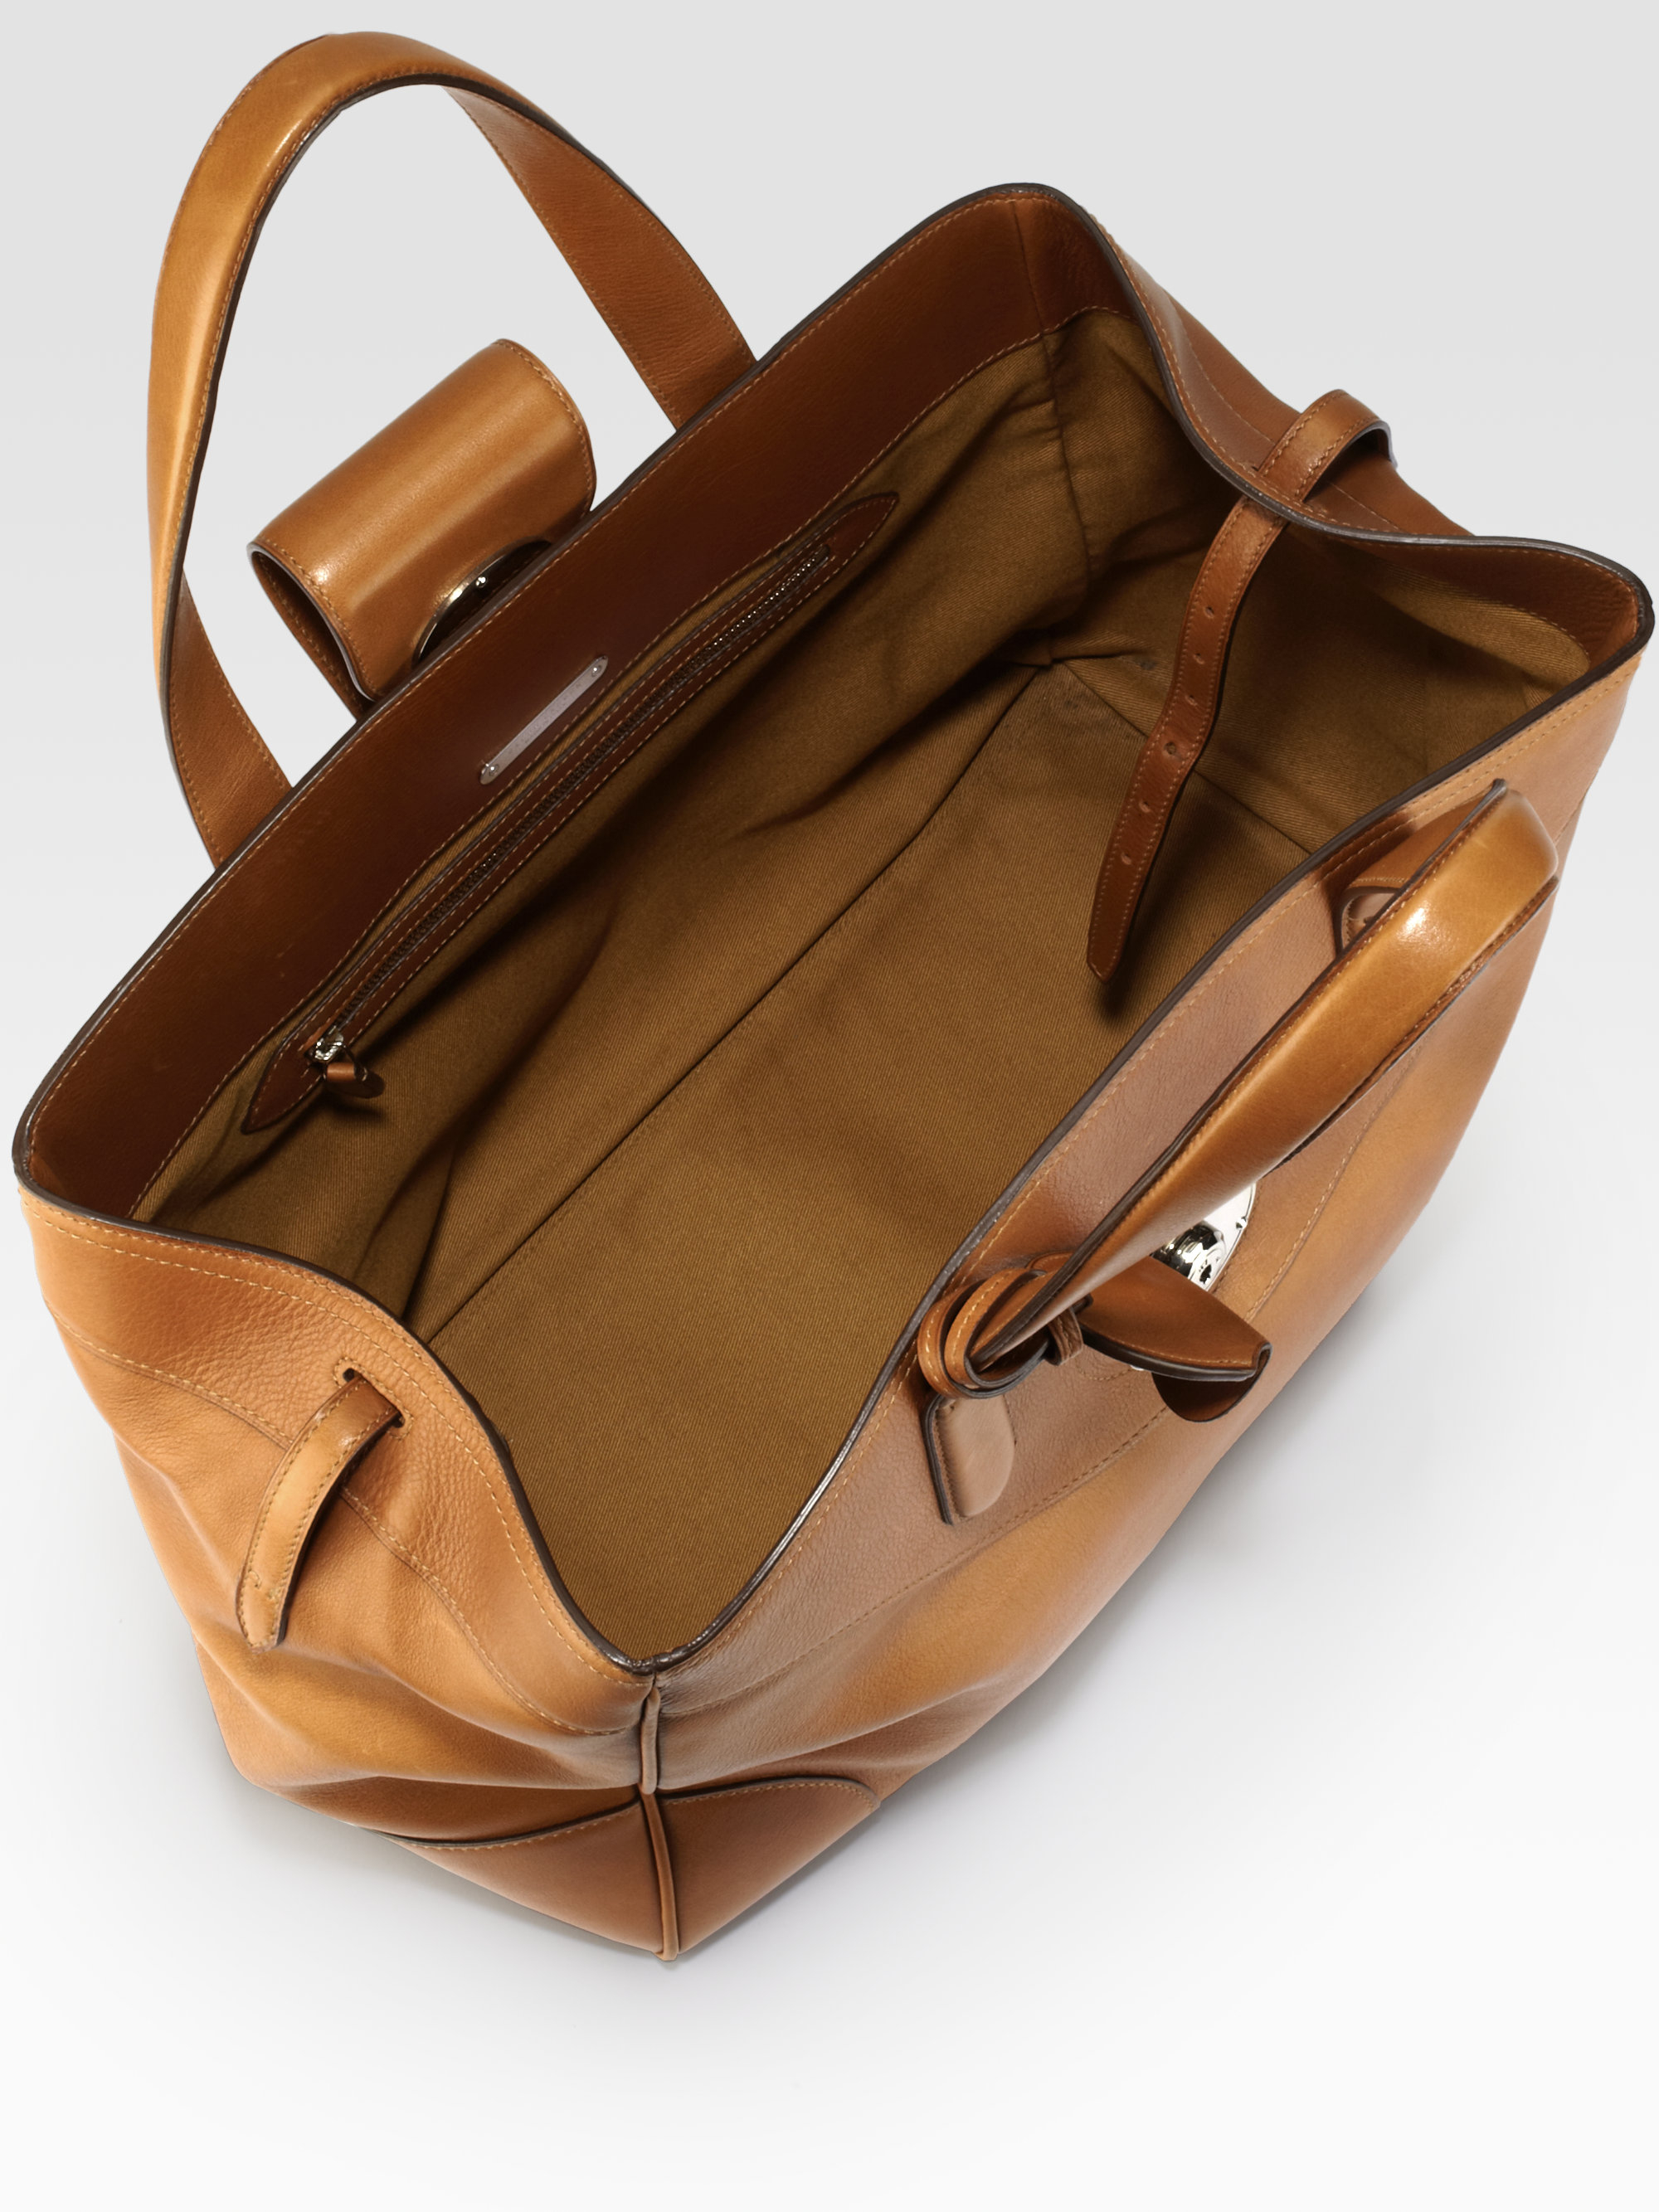 3a02eab0be54 Lyst - Ralph Lauren Collection Large Rustic Ricky Tote in Brown